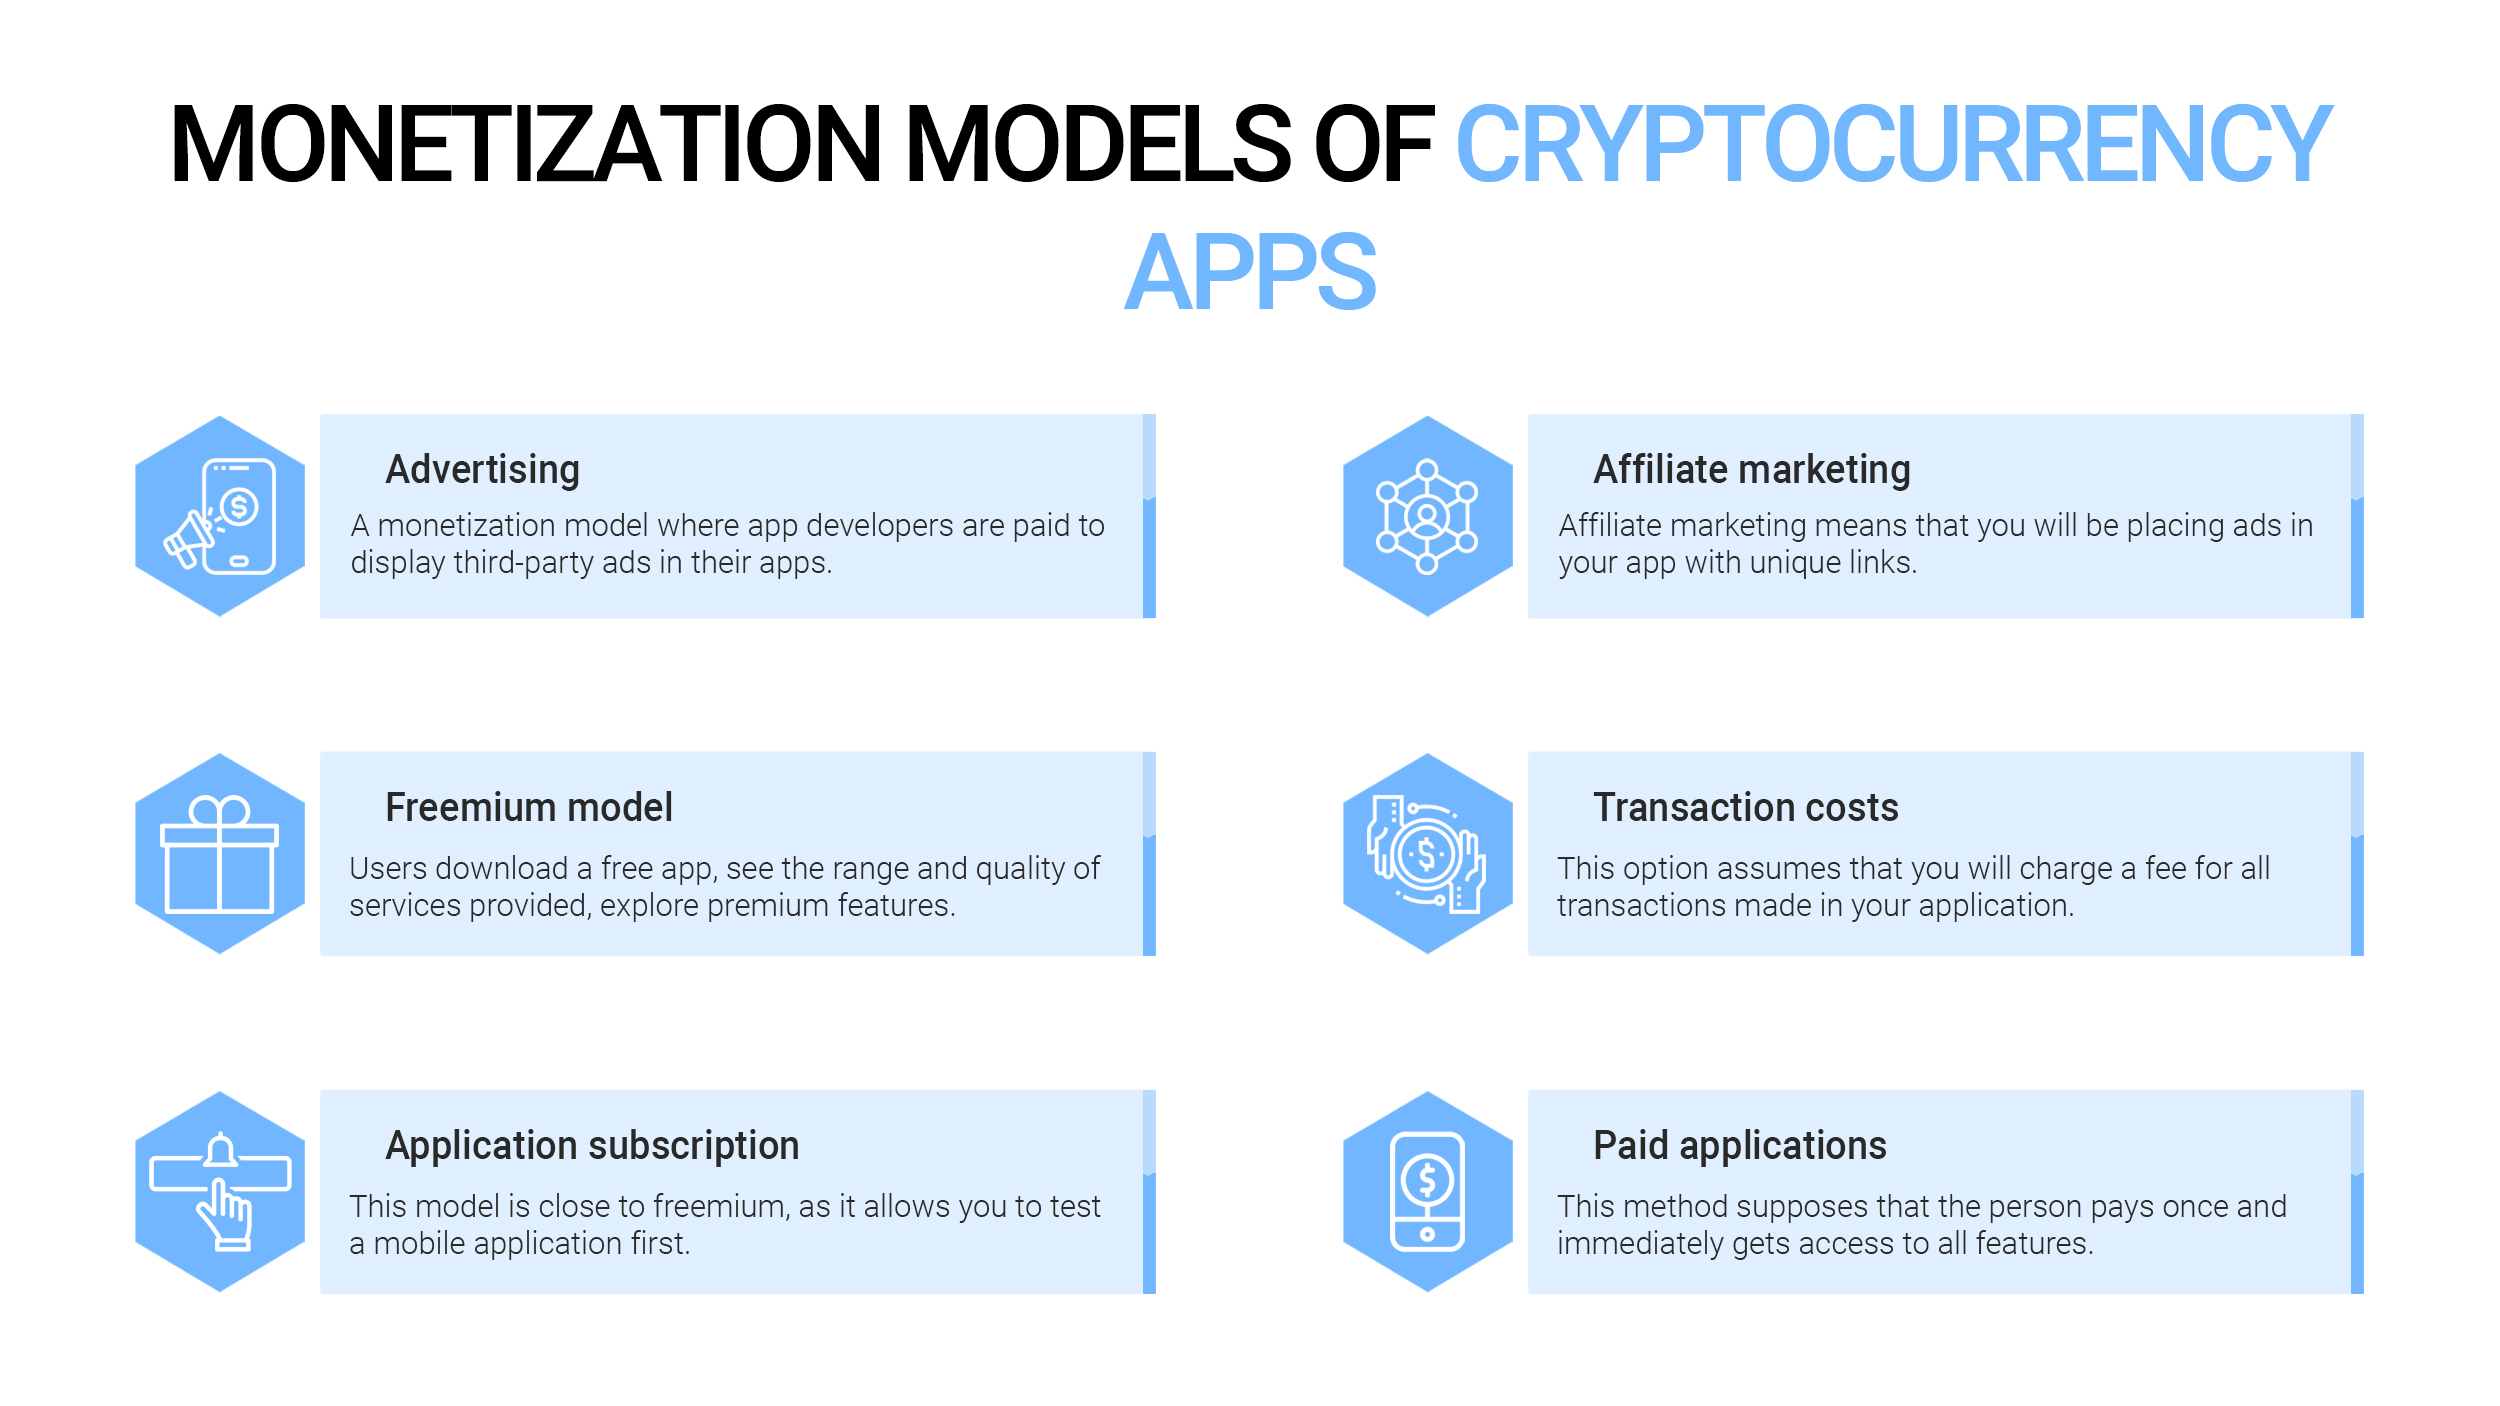 Monetization models of cryptocurrency apps